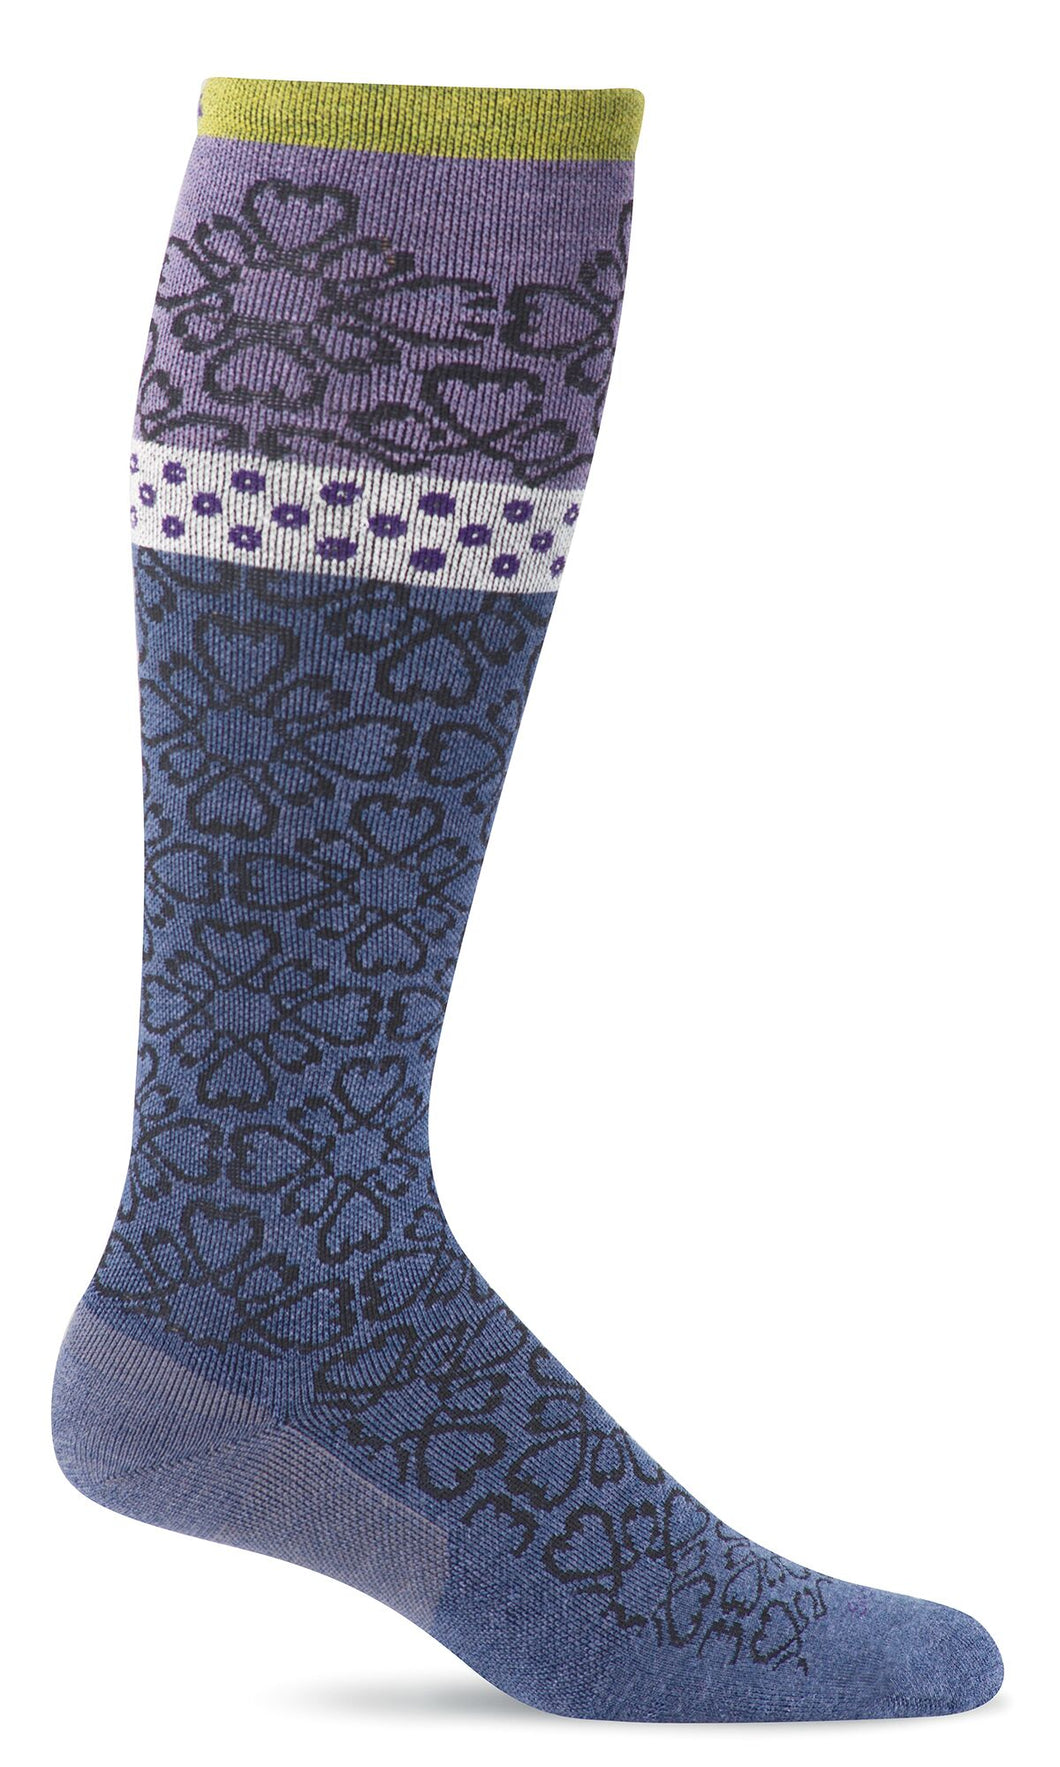 Sockwell Denim Women's Botanical Socks